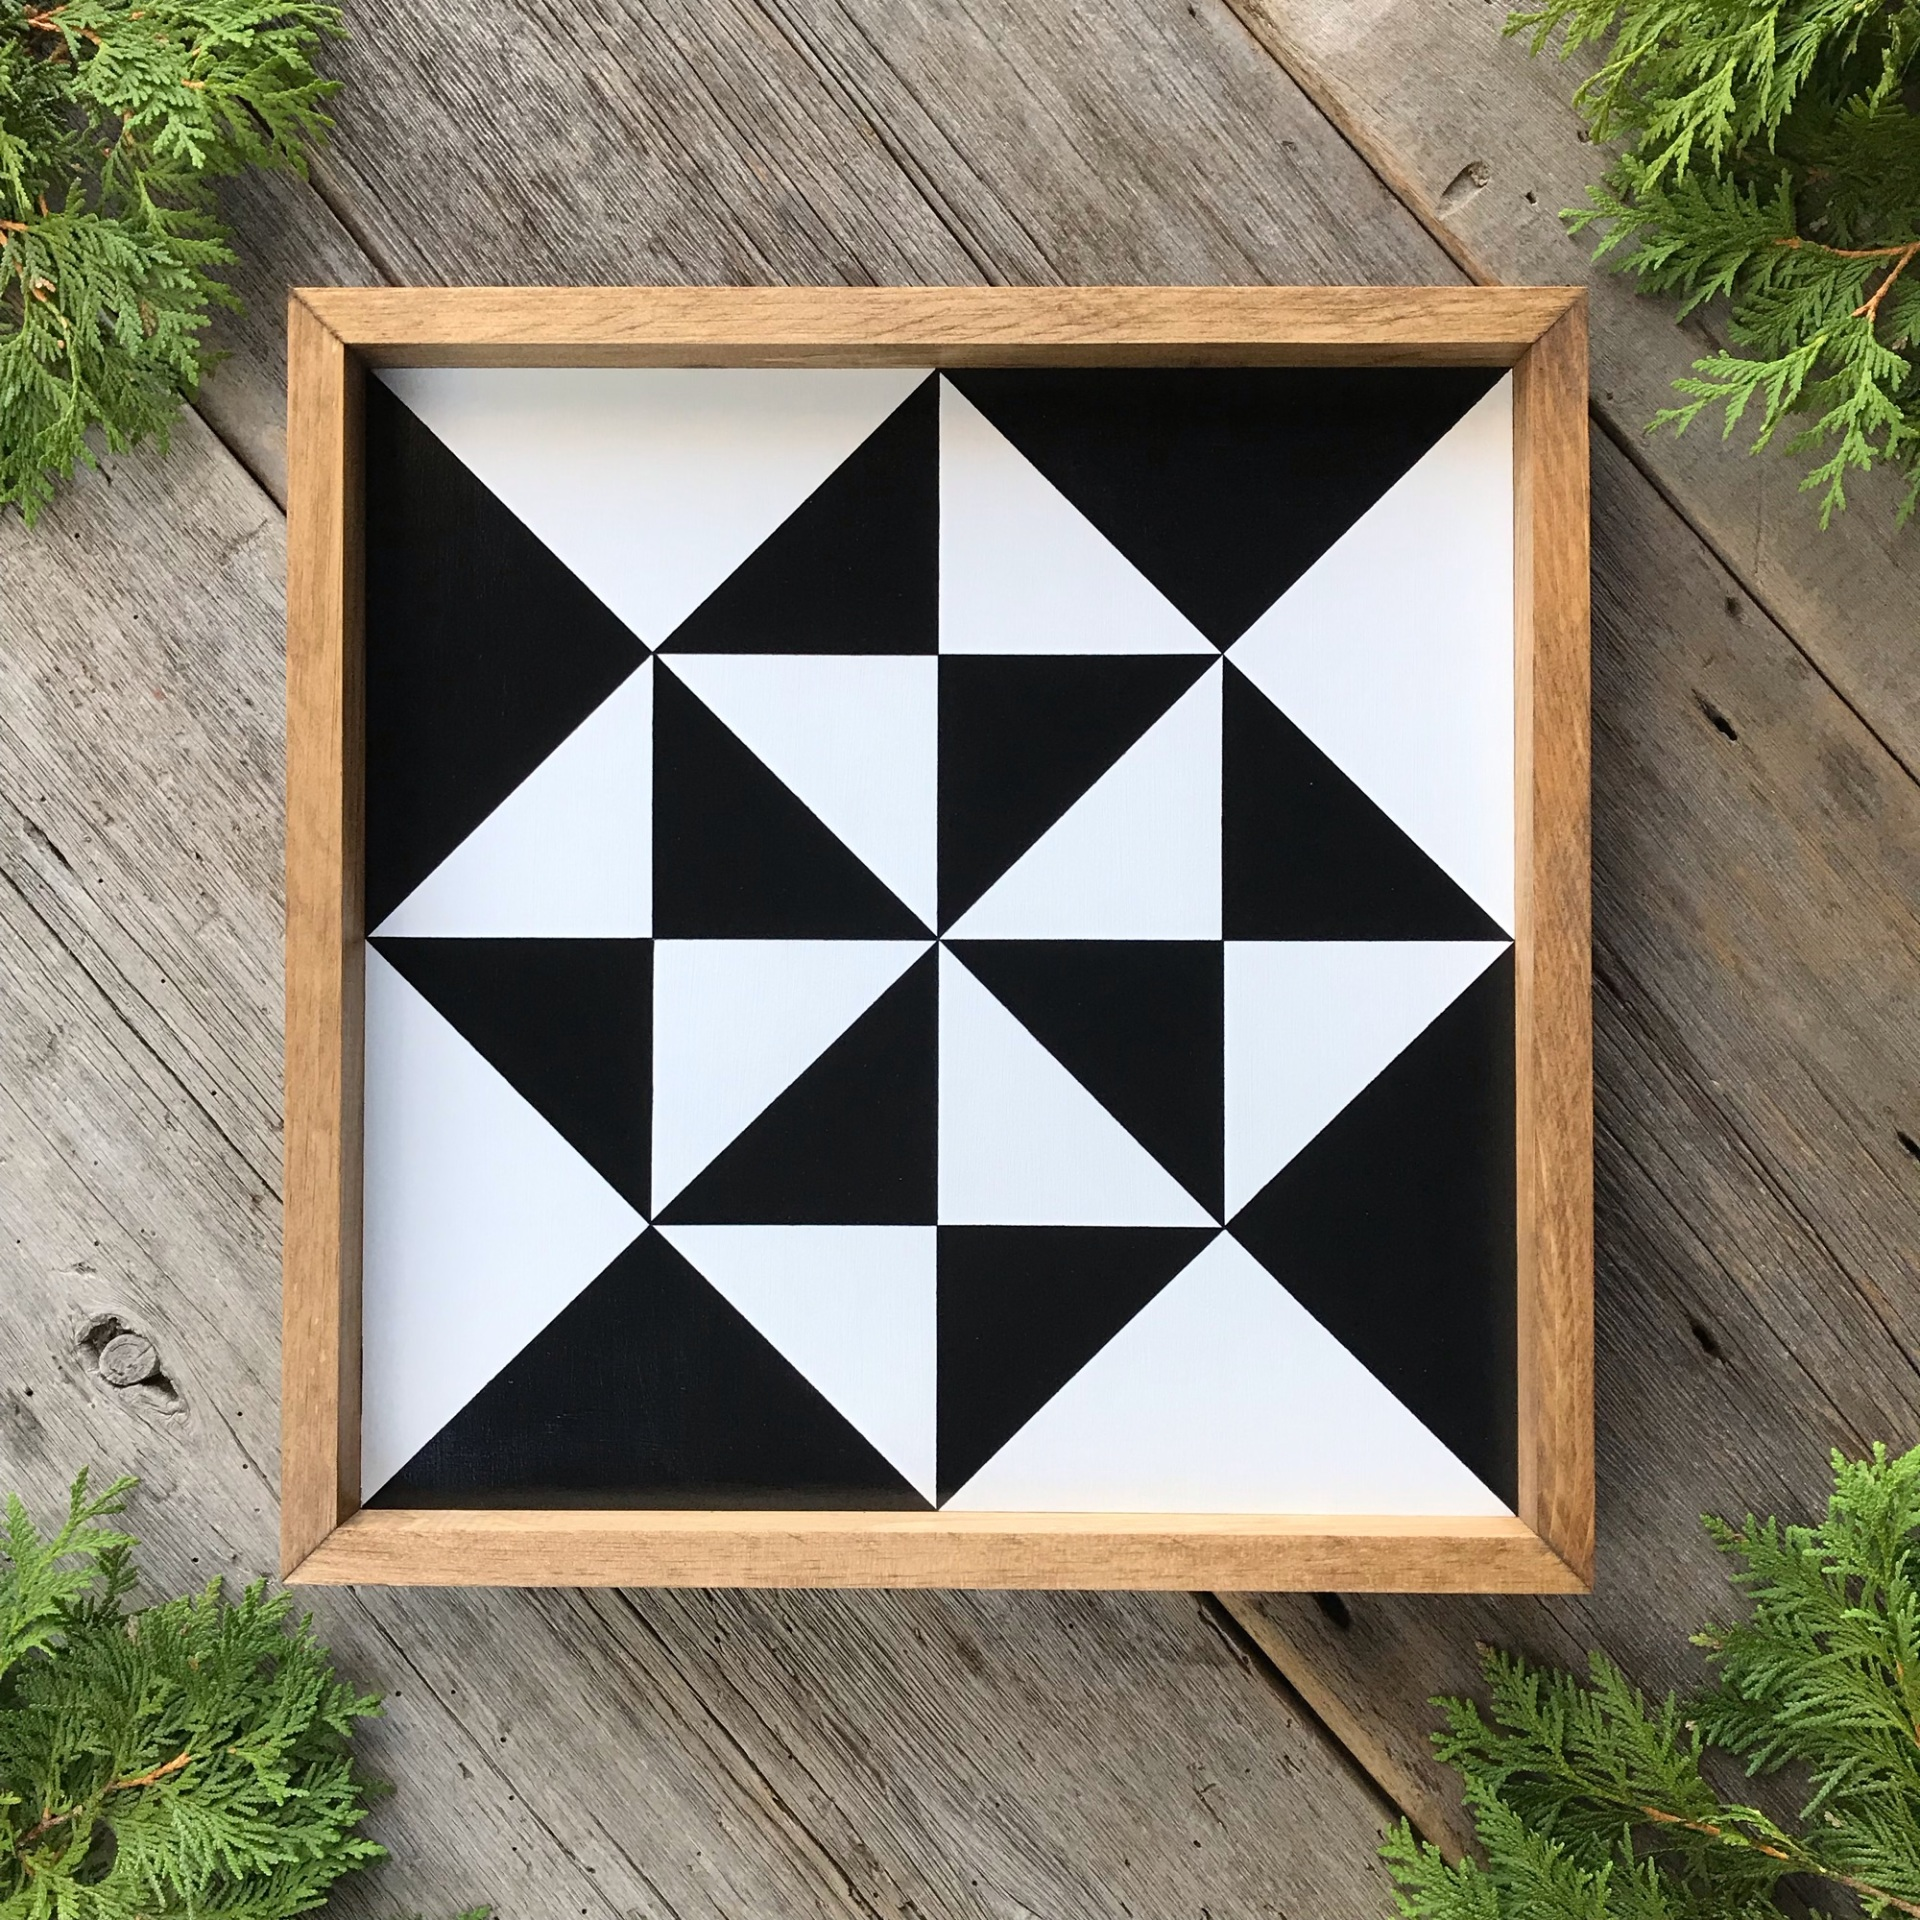 Barn Quilt, Wood Wall Art, Wood Barn Quilt Square, Quilt Wall Art, Peace and Plenty Quilt Square